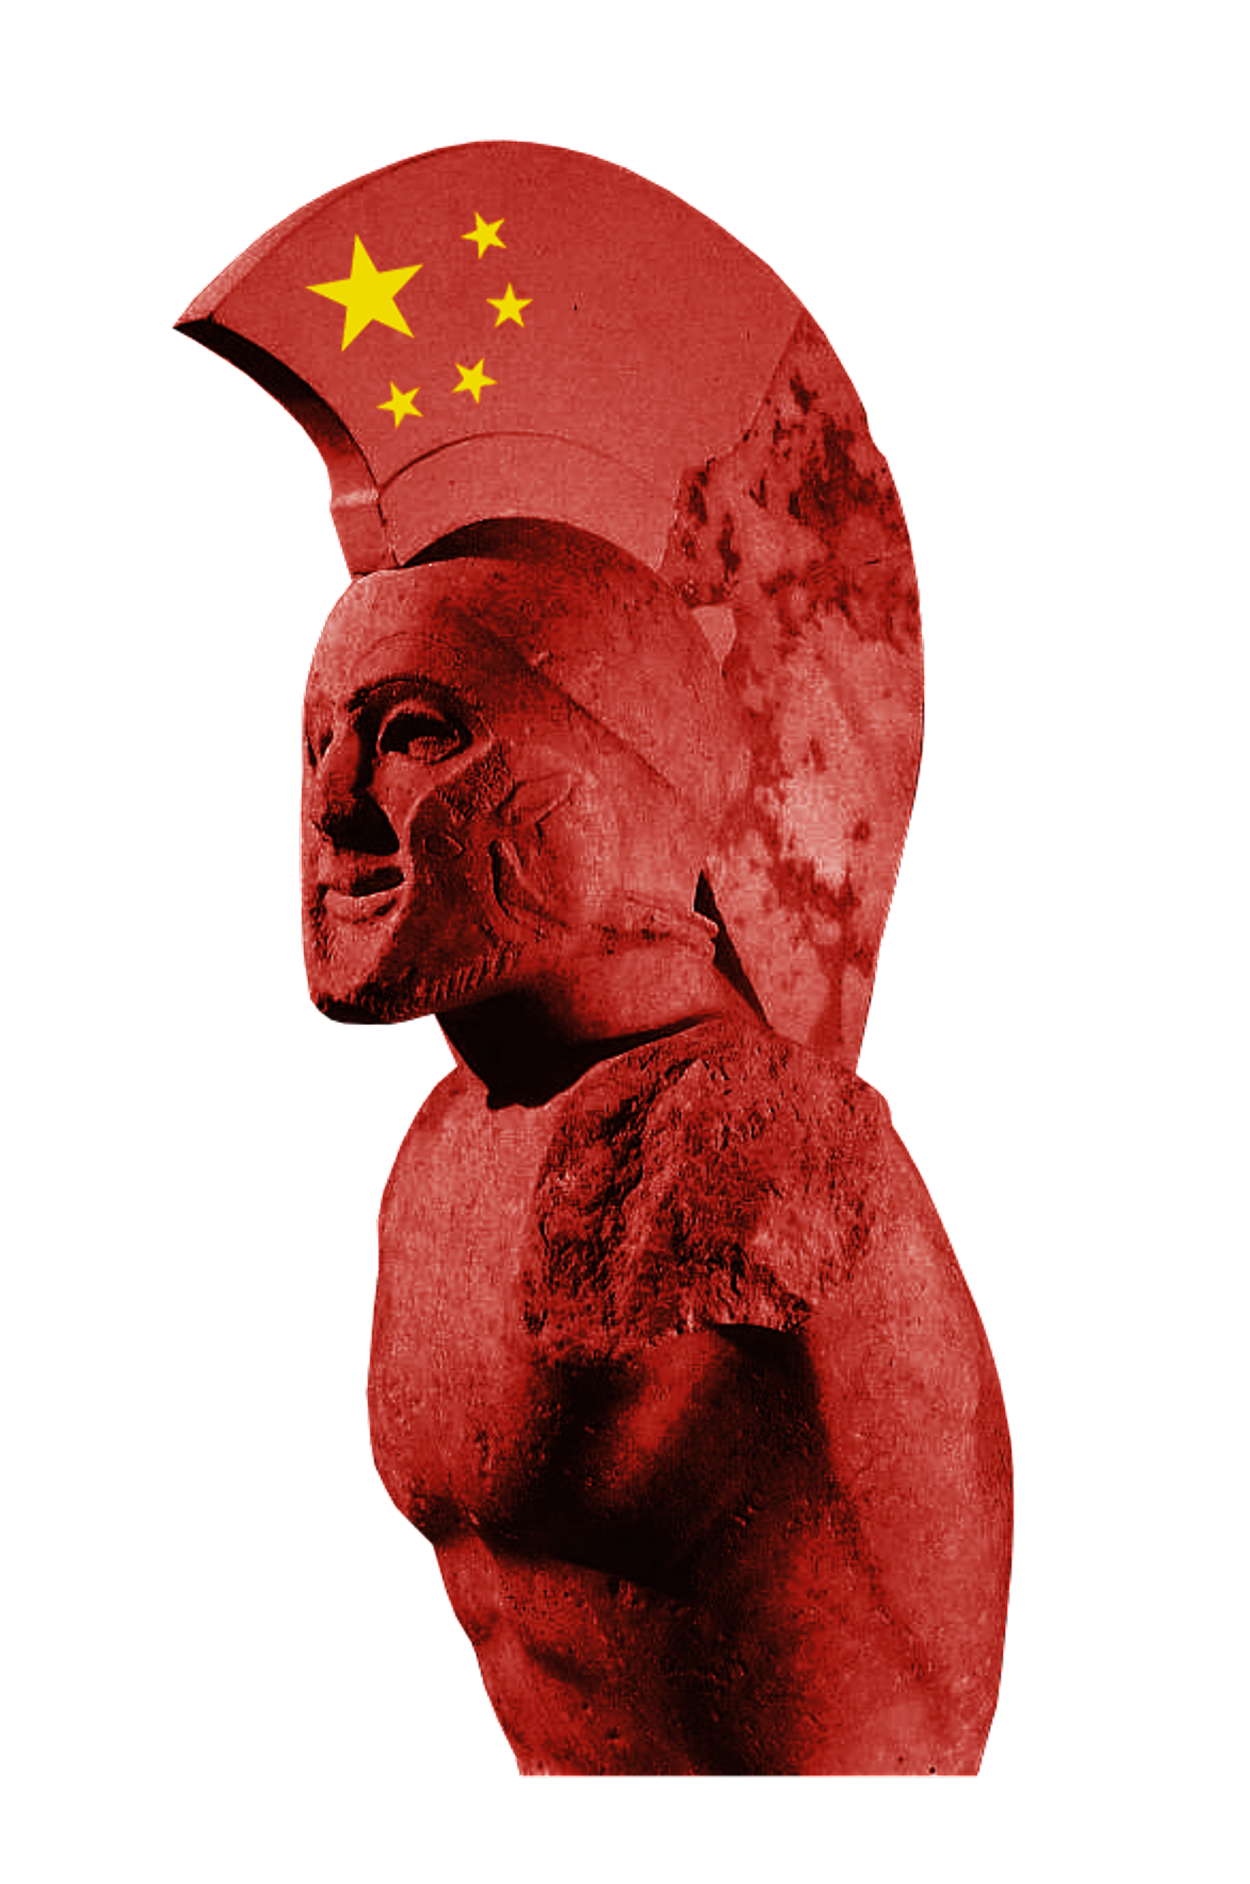 Article on China infiltration of United States through corporate elite, elected elite, and university elite